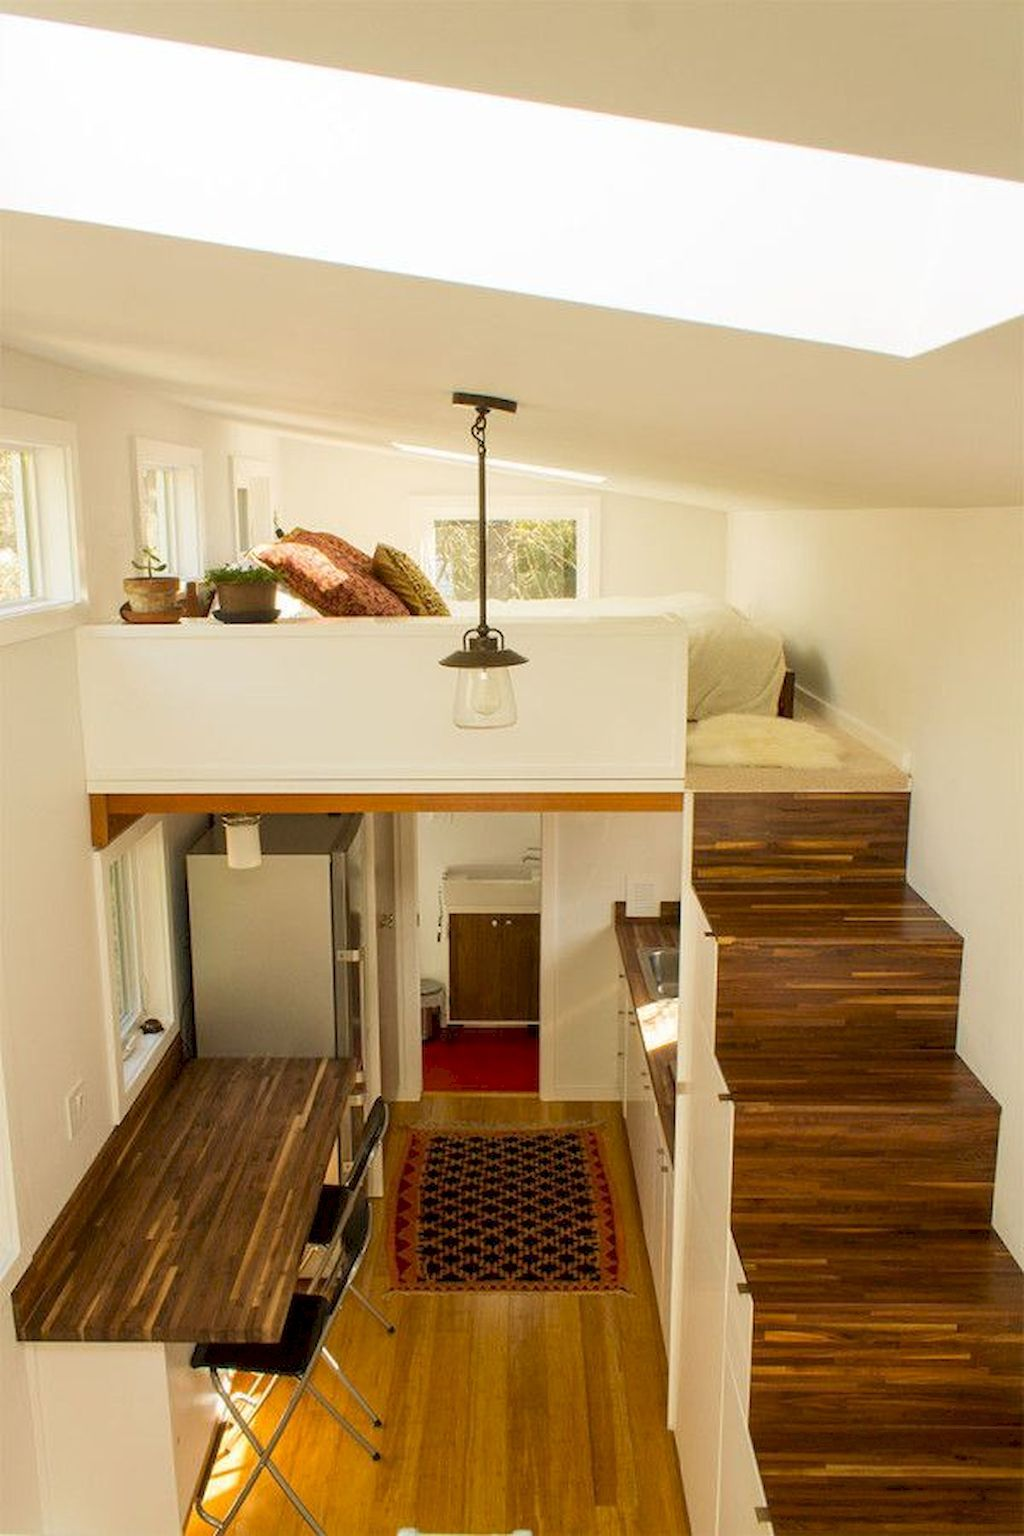 70 Clever Loft Stair For Tiny House Ideas Spaciroom Com Tiny